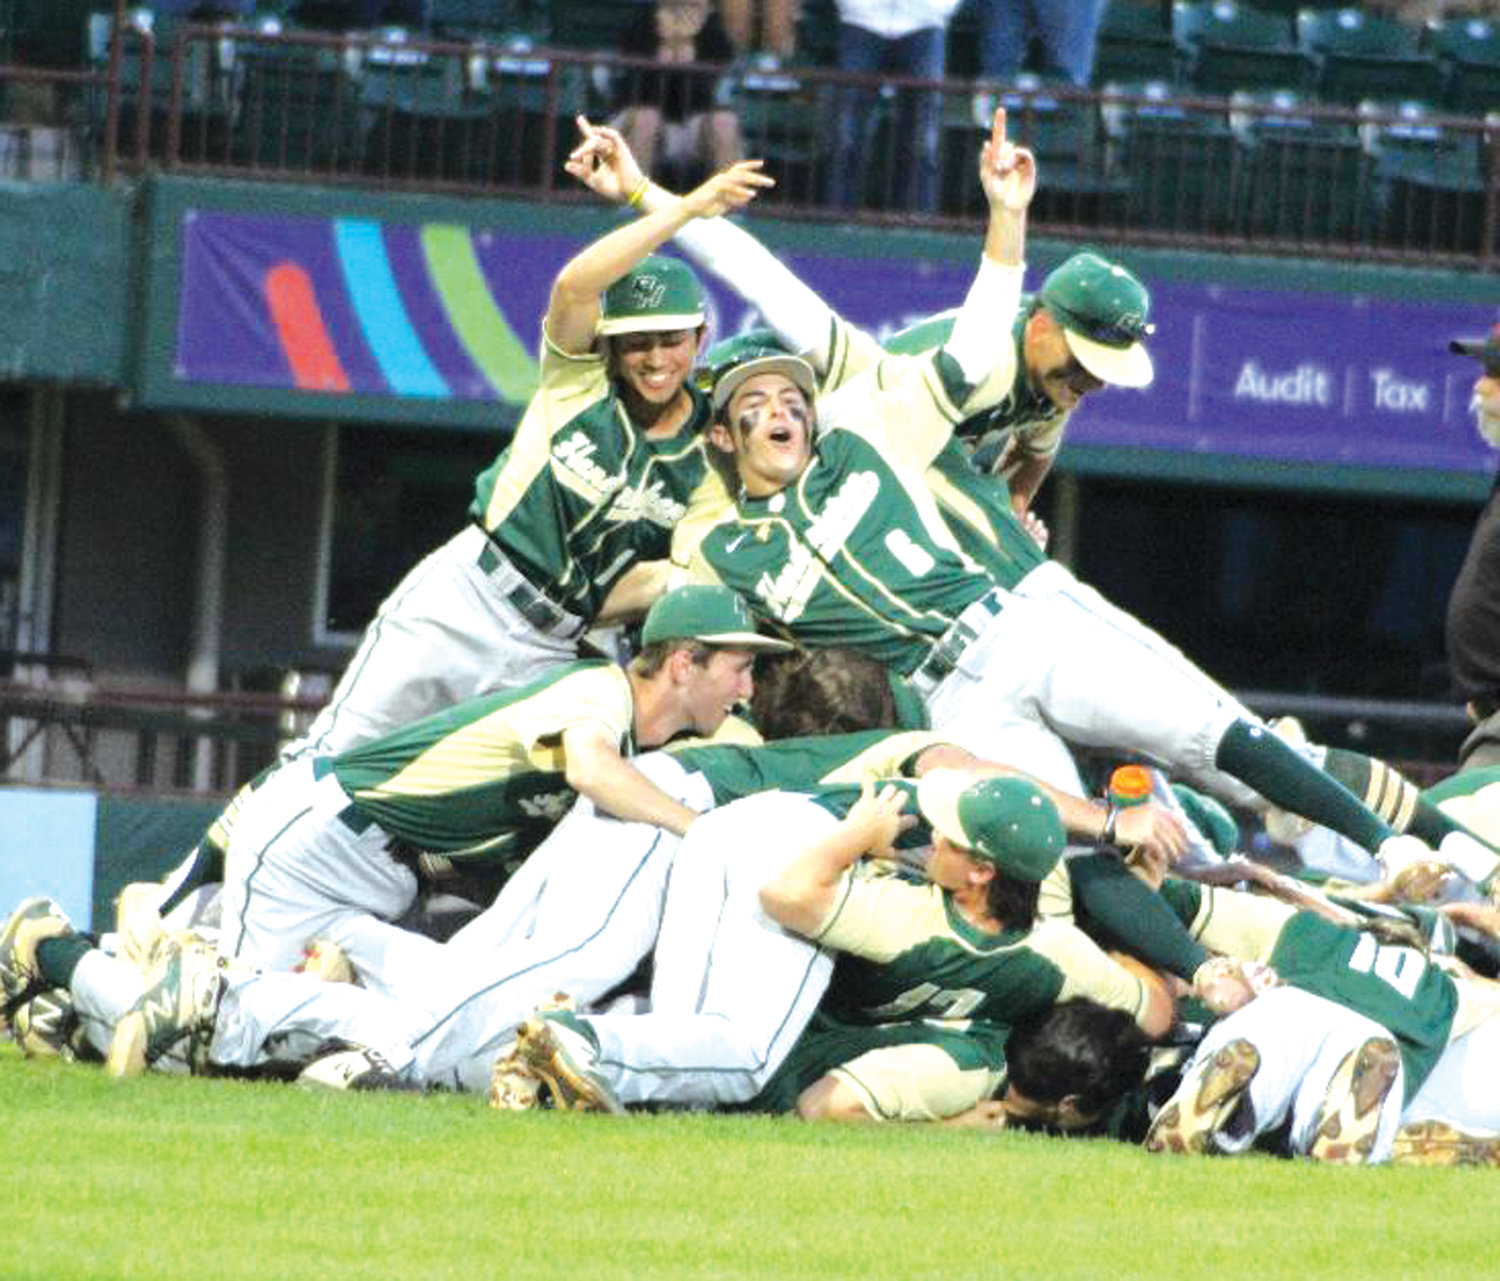 CELEBRATE GOOD TIMES: The Bishop Hendricken baseball team celebrates on the field at McCoy Stadium after getting the final out to clinch the 2019 D1 baseball title over La Salle.